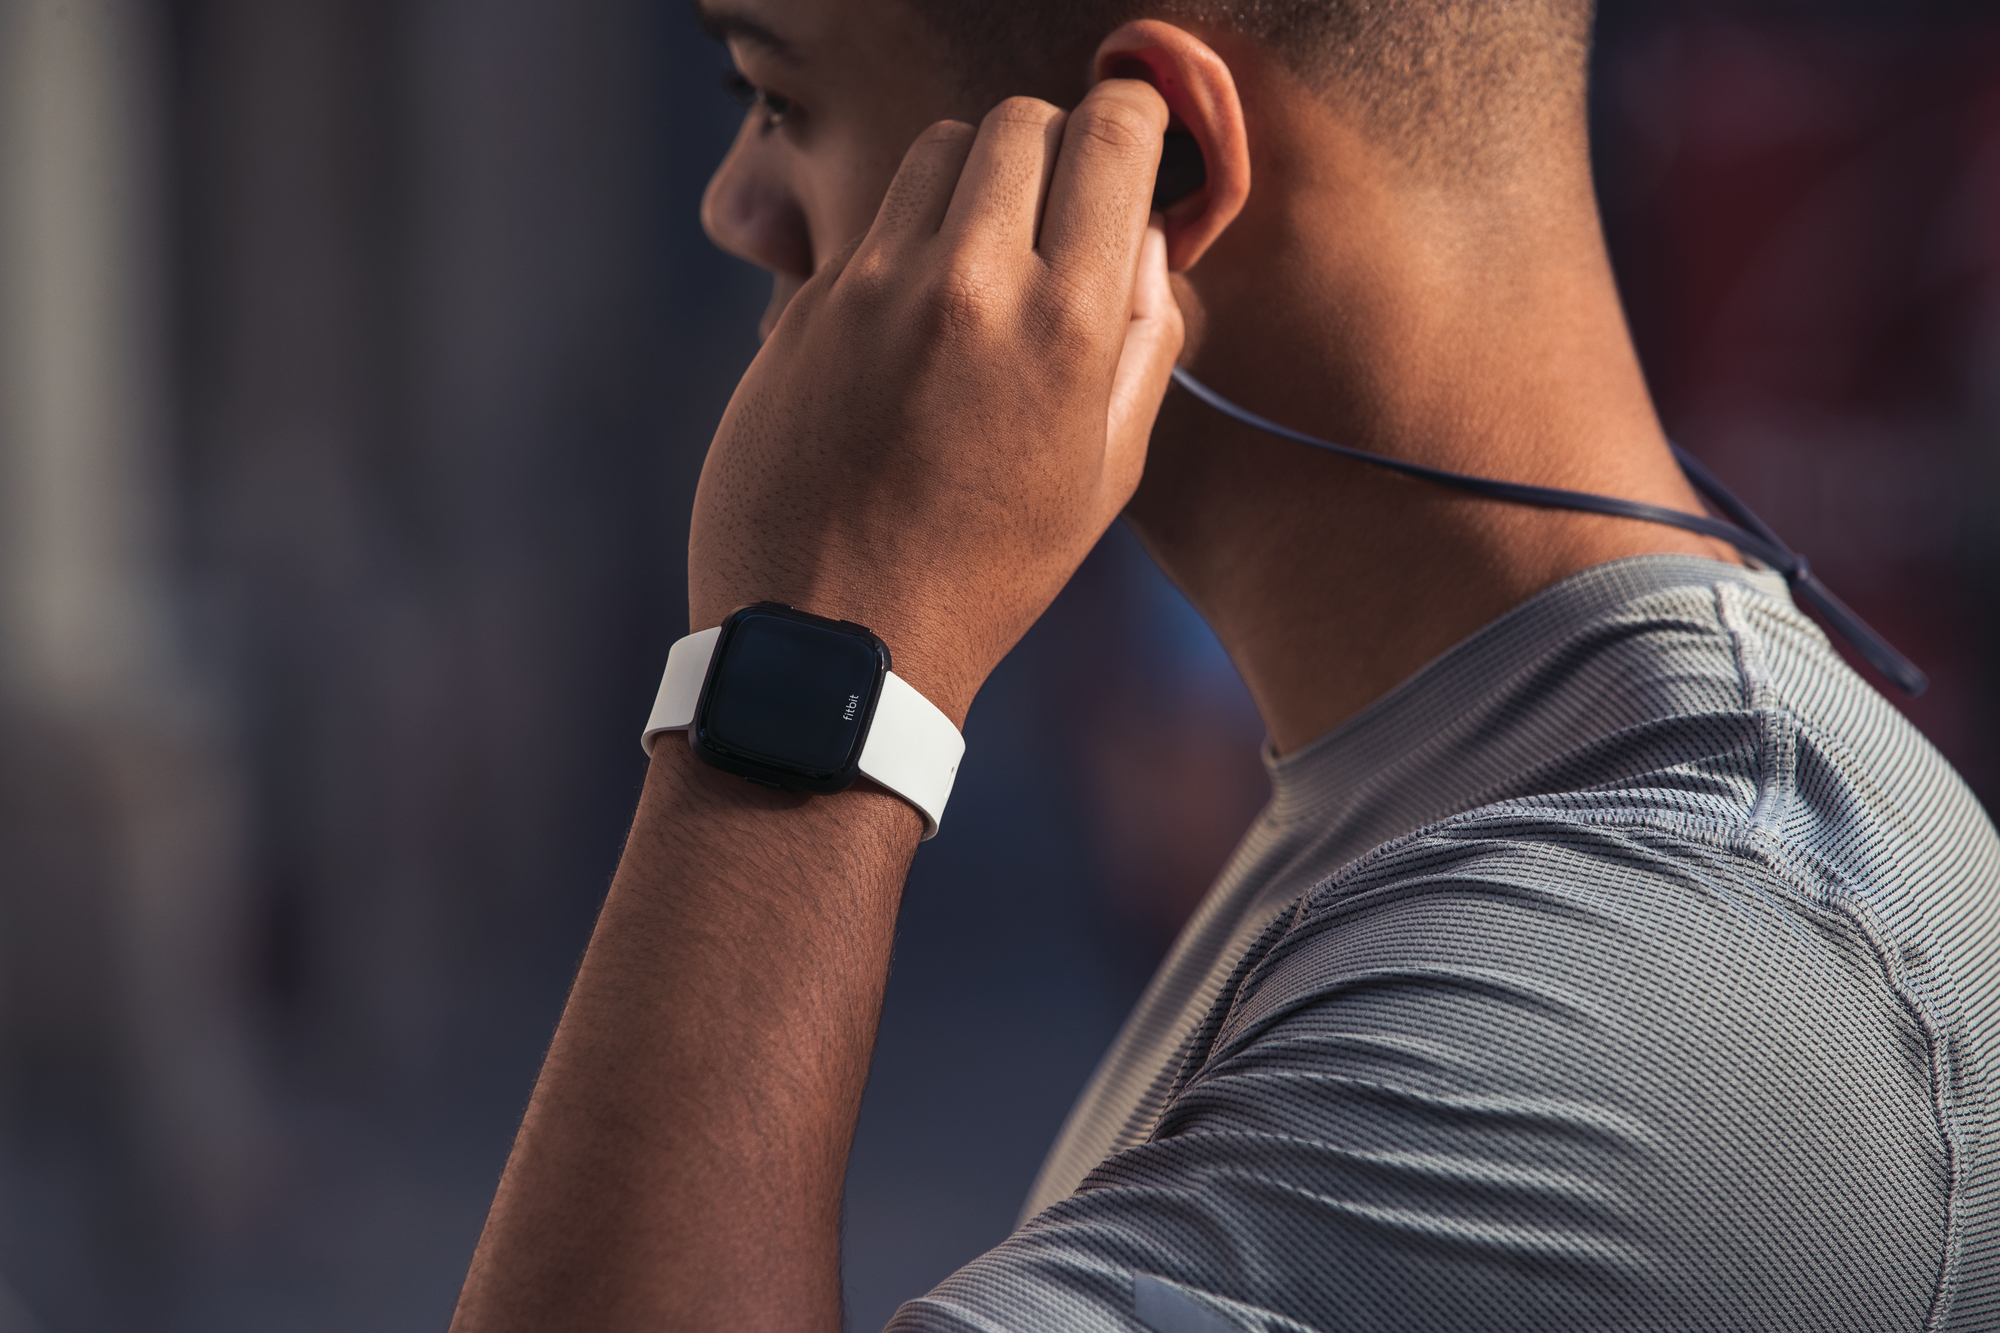 The new Fitbit Versa is the healthiest wearable for smartwatch enthusiasts